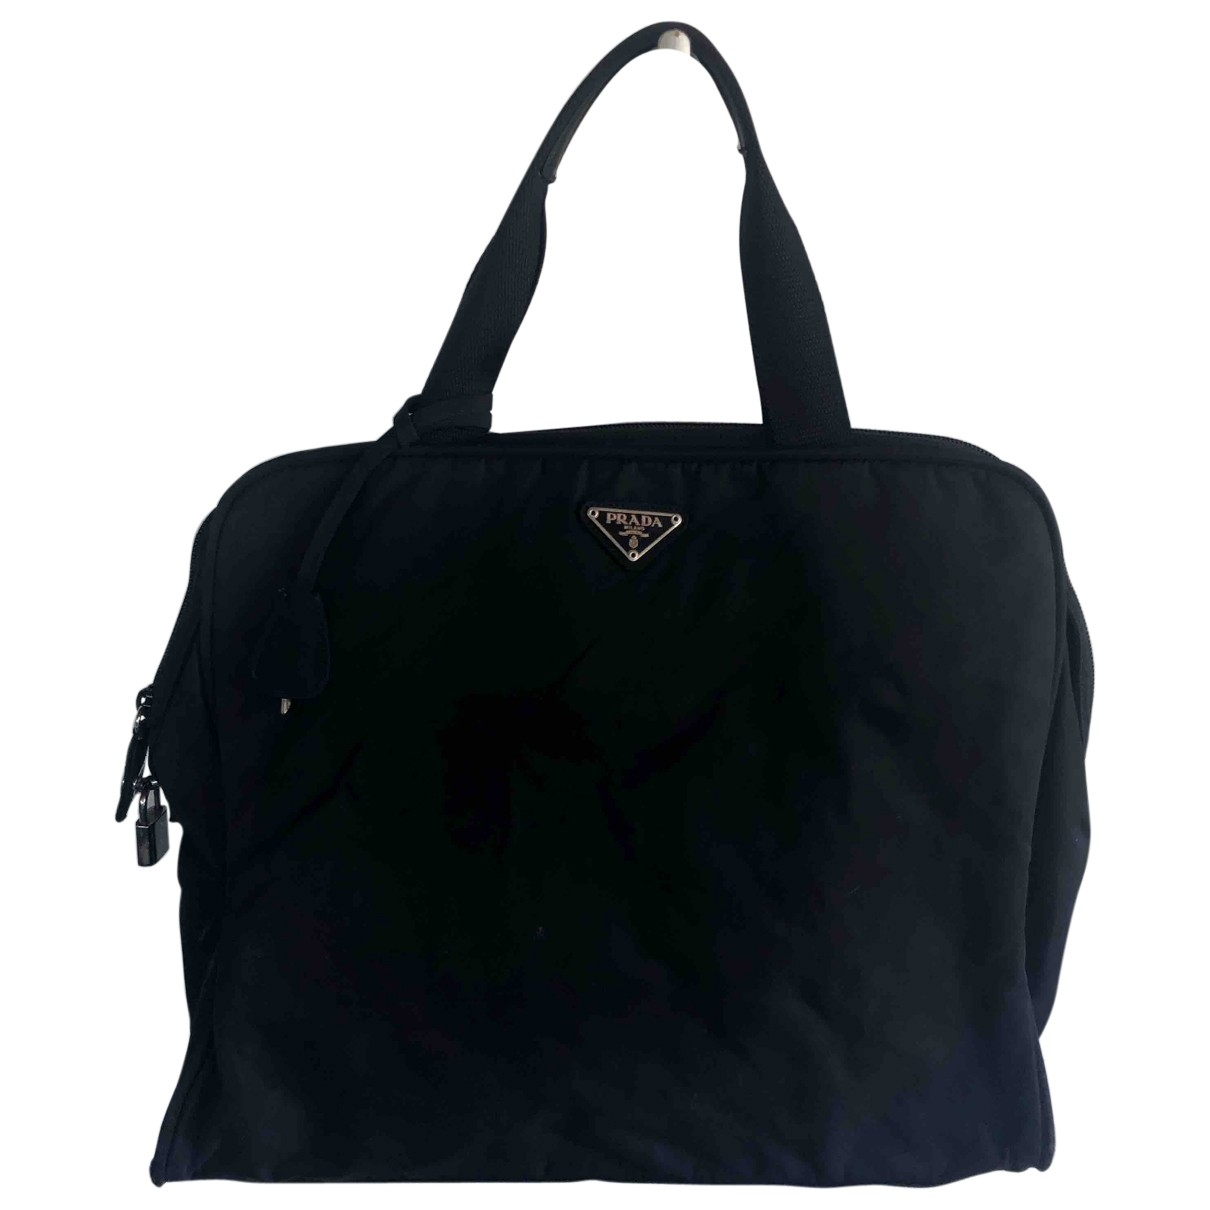 Prada \N Black handbag for Women \N